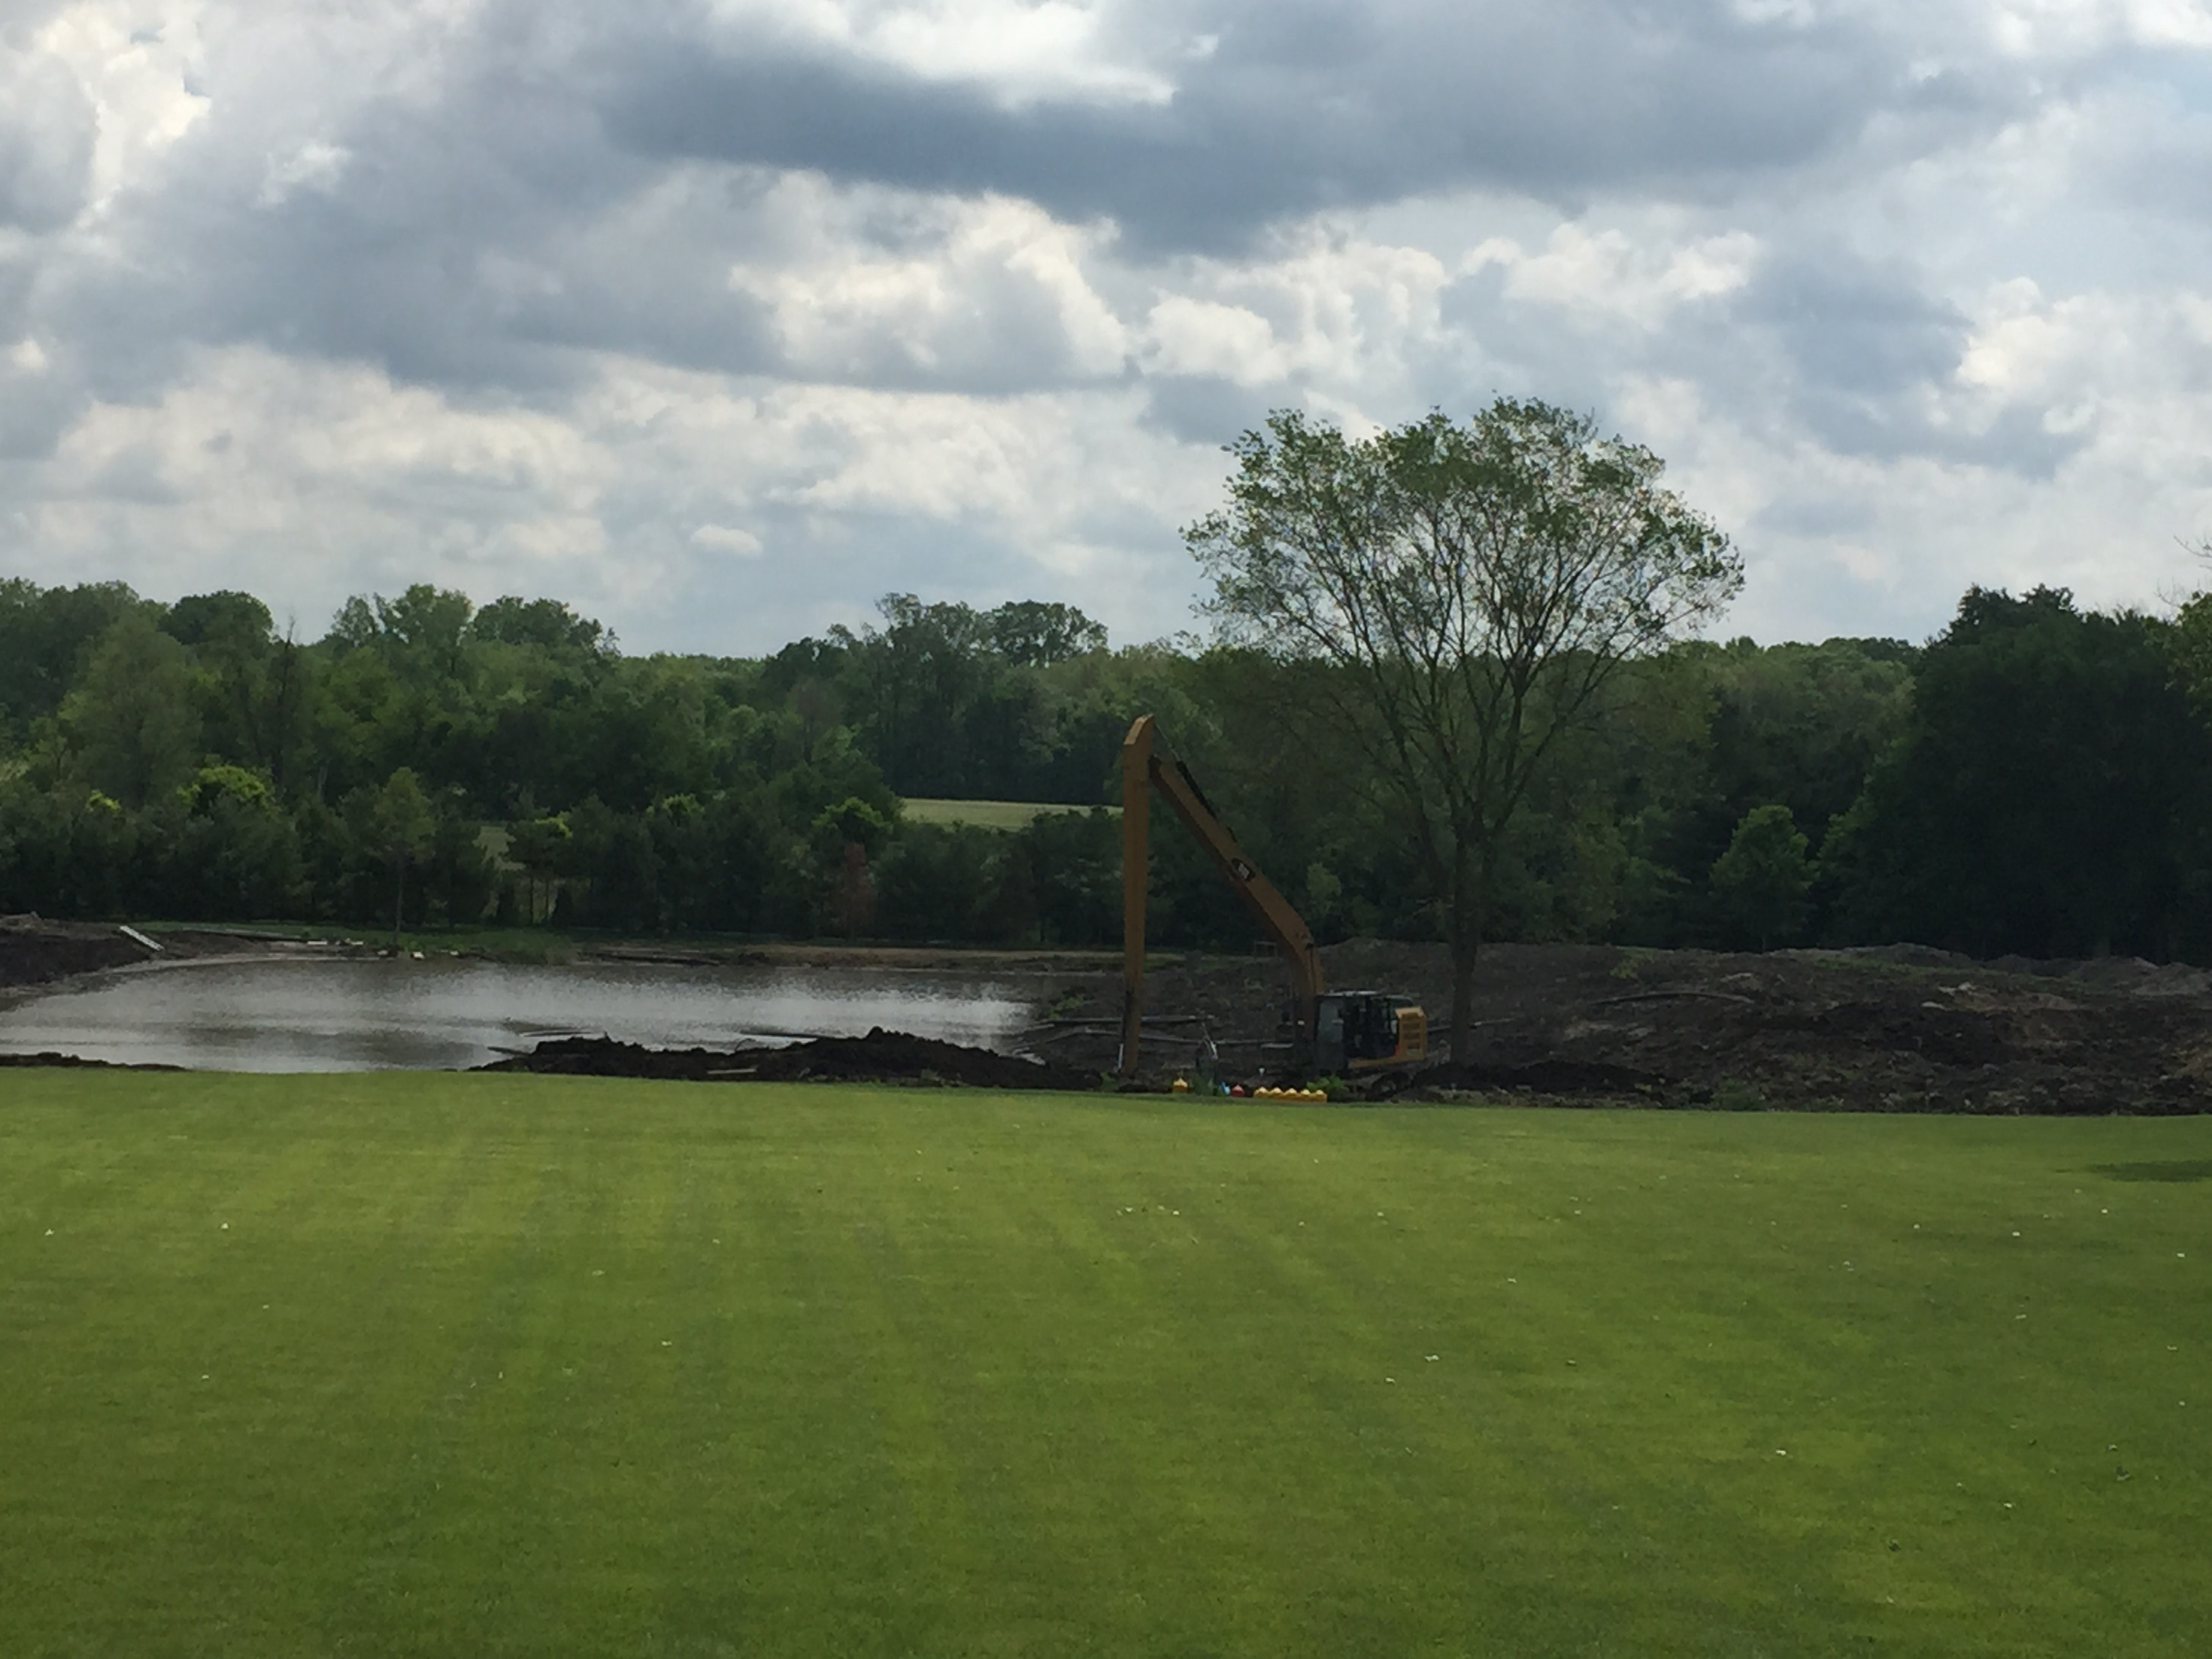 2 Acre Pond Construction : Fish pond excavation plymouth michigan